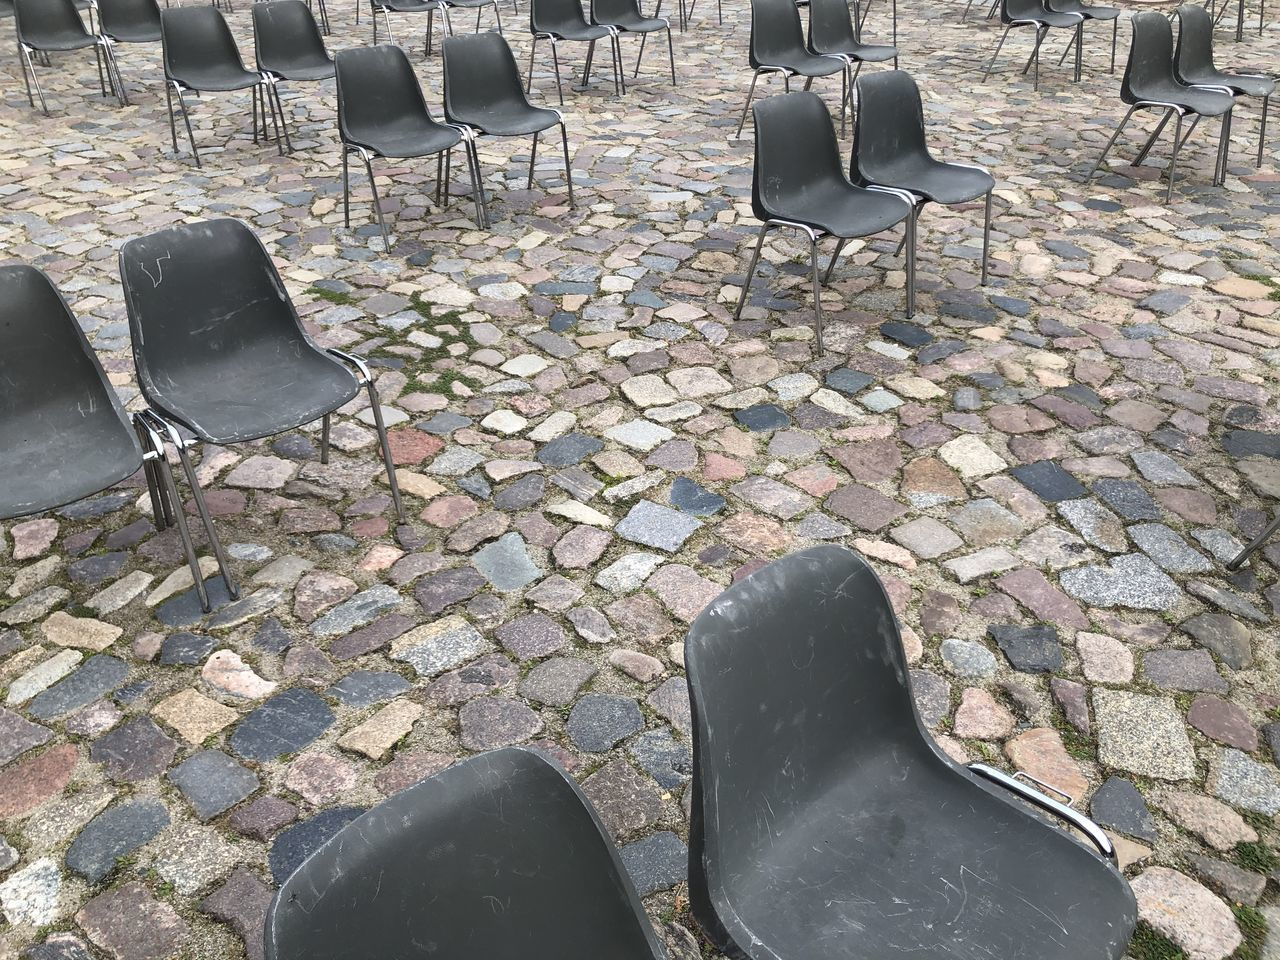 HIGH ANGLE VIEW OF EMPTY CHAIRS ON STREET